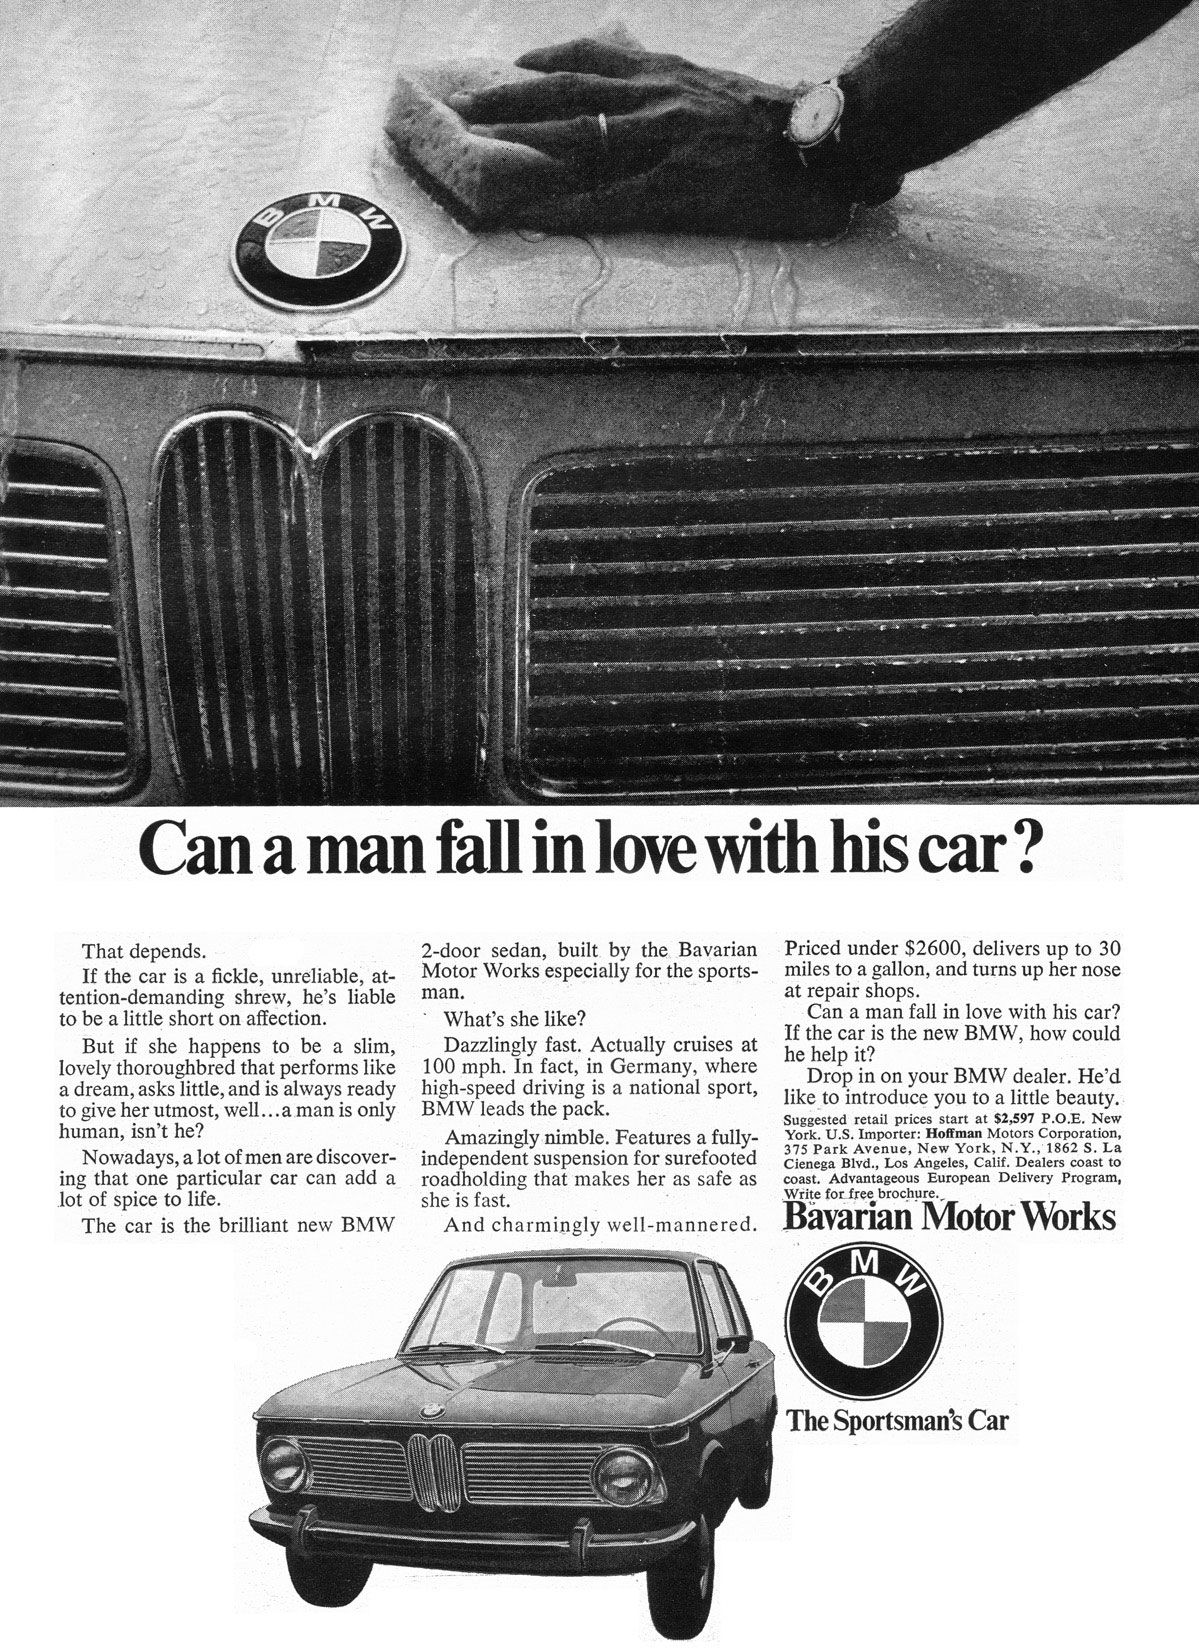 Can a man fall in love with his car? That depends. If the car is a fickle, unreliable, at-tention-demanding shrew, he's liable to be a little short on affection. But if she happens to be a slim, lovely thoroughbred that performs like a dream, asks little, and is always ready to give her utmost, well...a man is only human, isn't he? Nowadays, a lot of men are discover-ing that one particular car can add a lot of spice to life. The car is the brilliant new BMW 2-door sedan, built by the Bavarian Motor Works especially for the sports-man. What's she like? Dazzlingly fast. Actually cruises at 100 mph. In fact, in Germany, where high-speed driving is a national sport, BMW leads the pack. Amazingly nimble. Features a fully-independent suspension for surefooted roadholding that makes her as safe as she is fast. And charmingly well-mannered. Priced under $2600, delivers up to 30 miles to a gallon, and turns up her nose at repair shops. Can a man fall in love with his car? If the car is the new BMW, how could he help it? Drop in on your BMW dealer. He'd like to introduce you to a little beauty. Suggested retail prices start at $2,597 P.O.E. New York. U.S. Importer: Hoffman Motors Corporation, 375 Park Avenue, New York, N.Y., 1862 S. La Cienega Blvd., Los Angeles, Calif. Dealers coast to coast. Advantageous European Delivery Program, Wfite for_free brochure., Bavarian Motor Works The Sportsman's Car